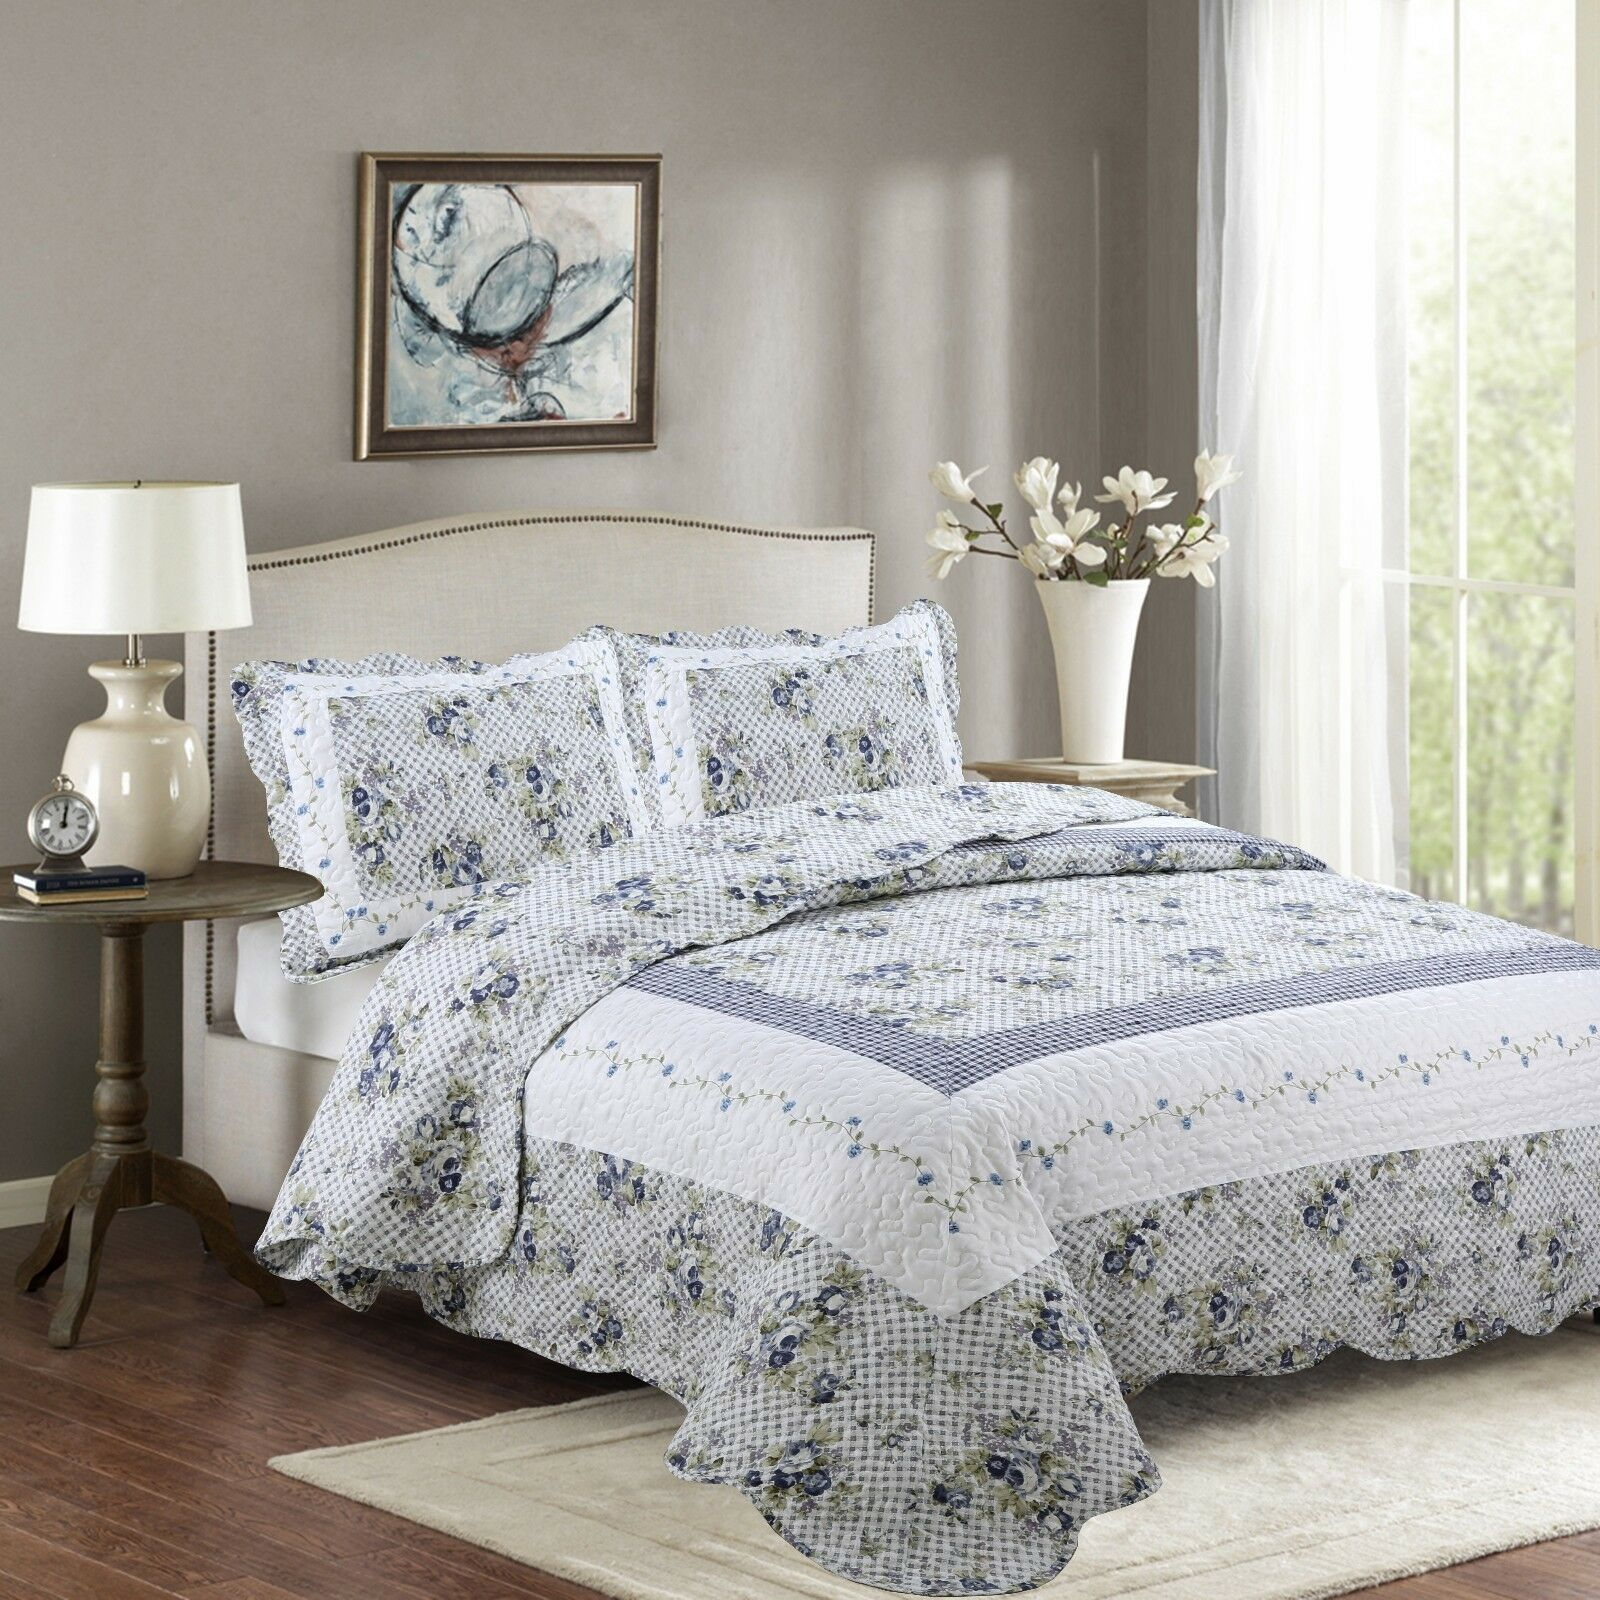 Fancy Linen Reversible Bedspread Floral Weiß Blau Grün All Größes New